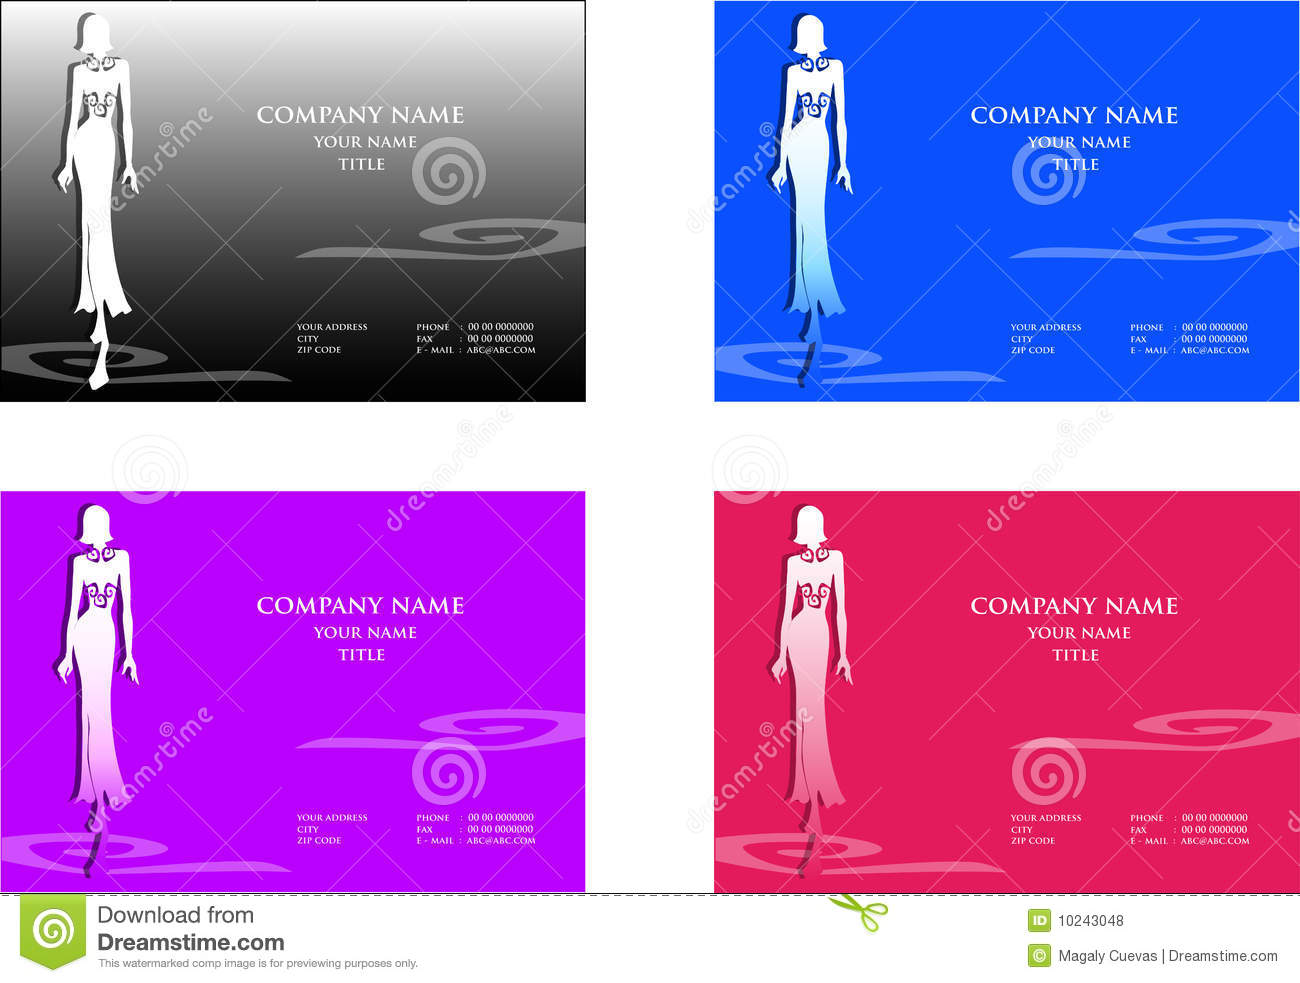 Fashion business cards stock vector illustration of woman 10243048 fashion business cards cheaphphosting